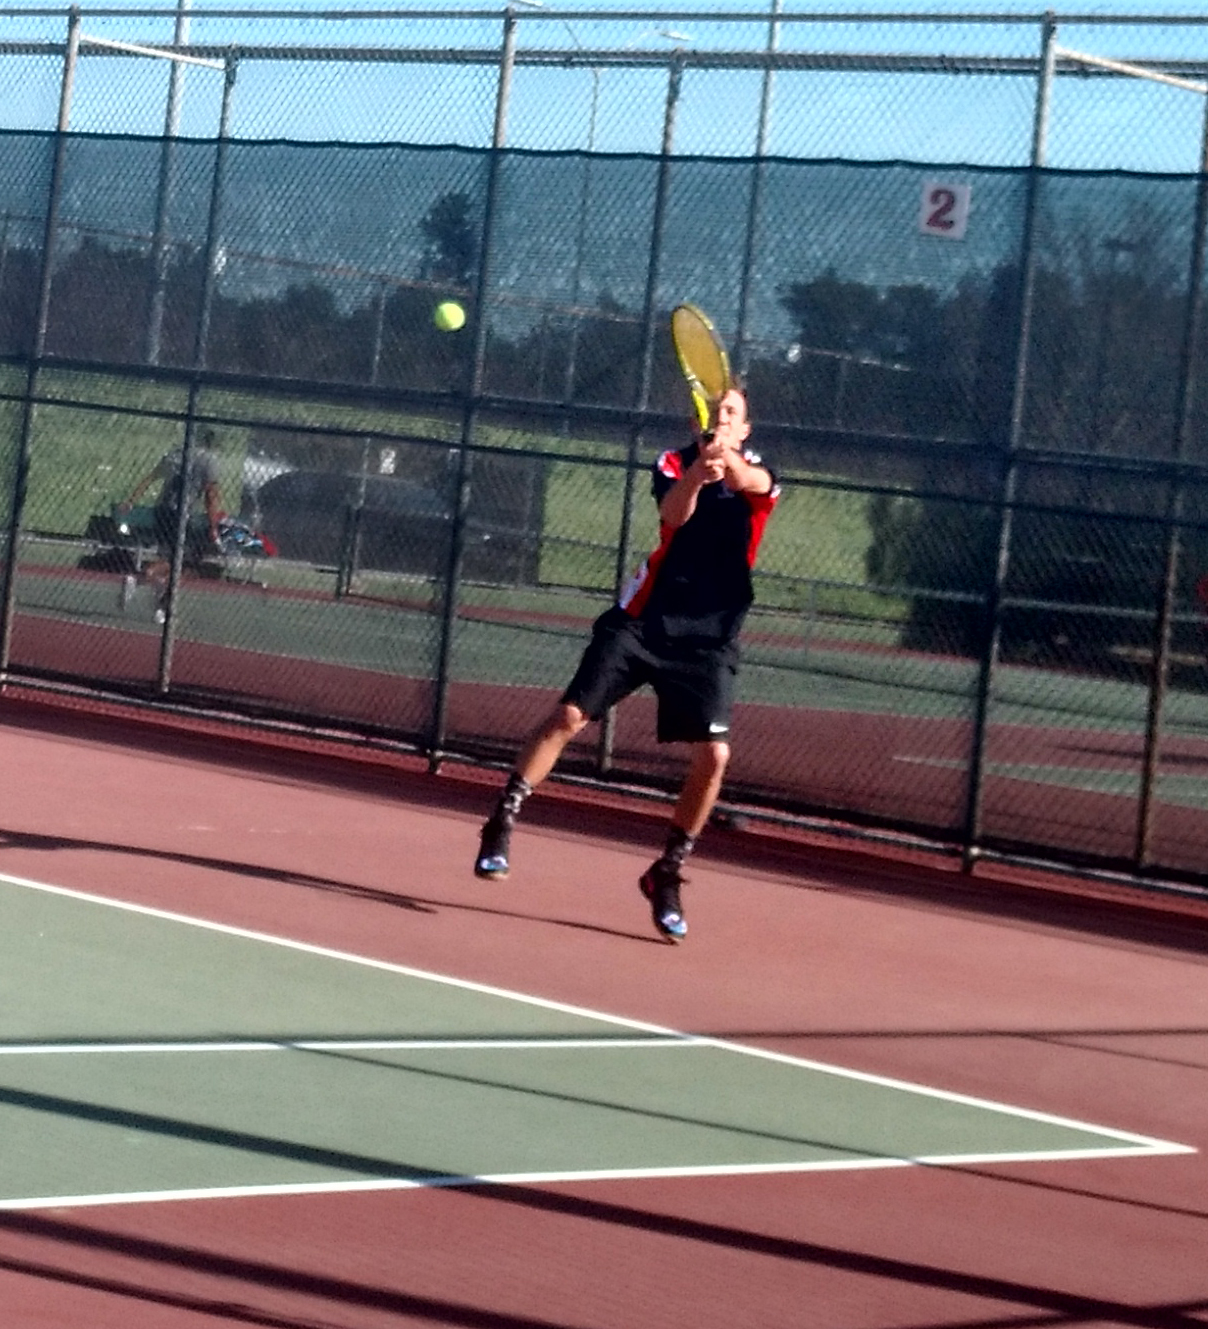 Caleb Johnson lands intense hit mid-air in his single match.